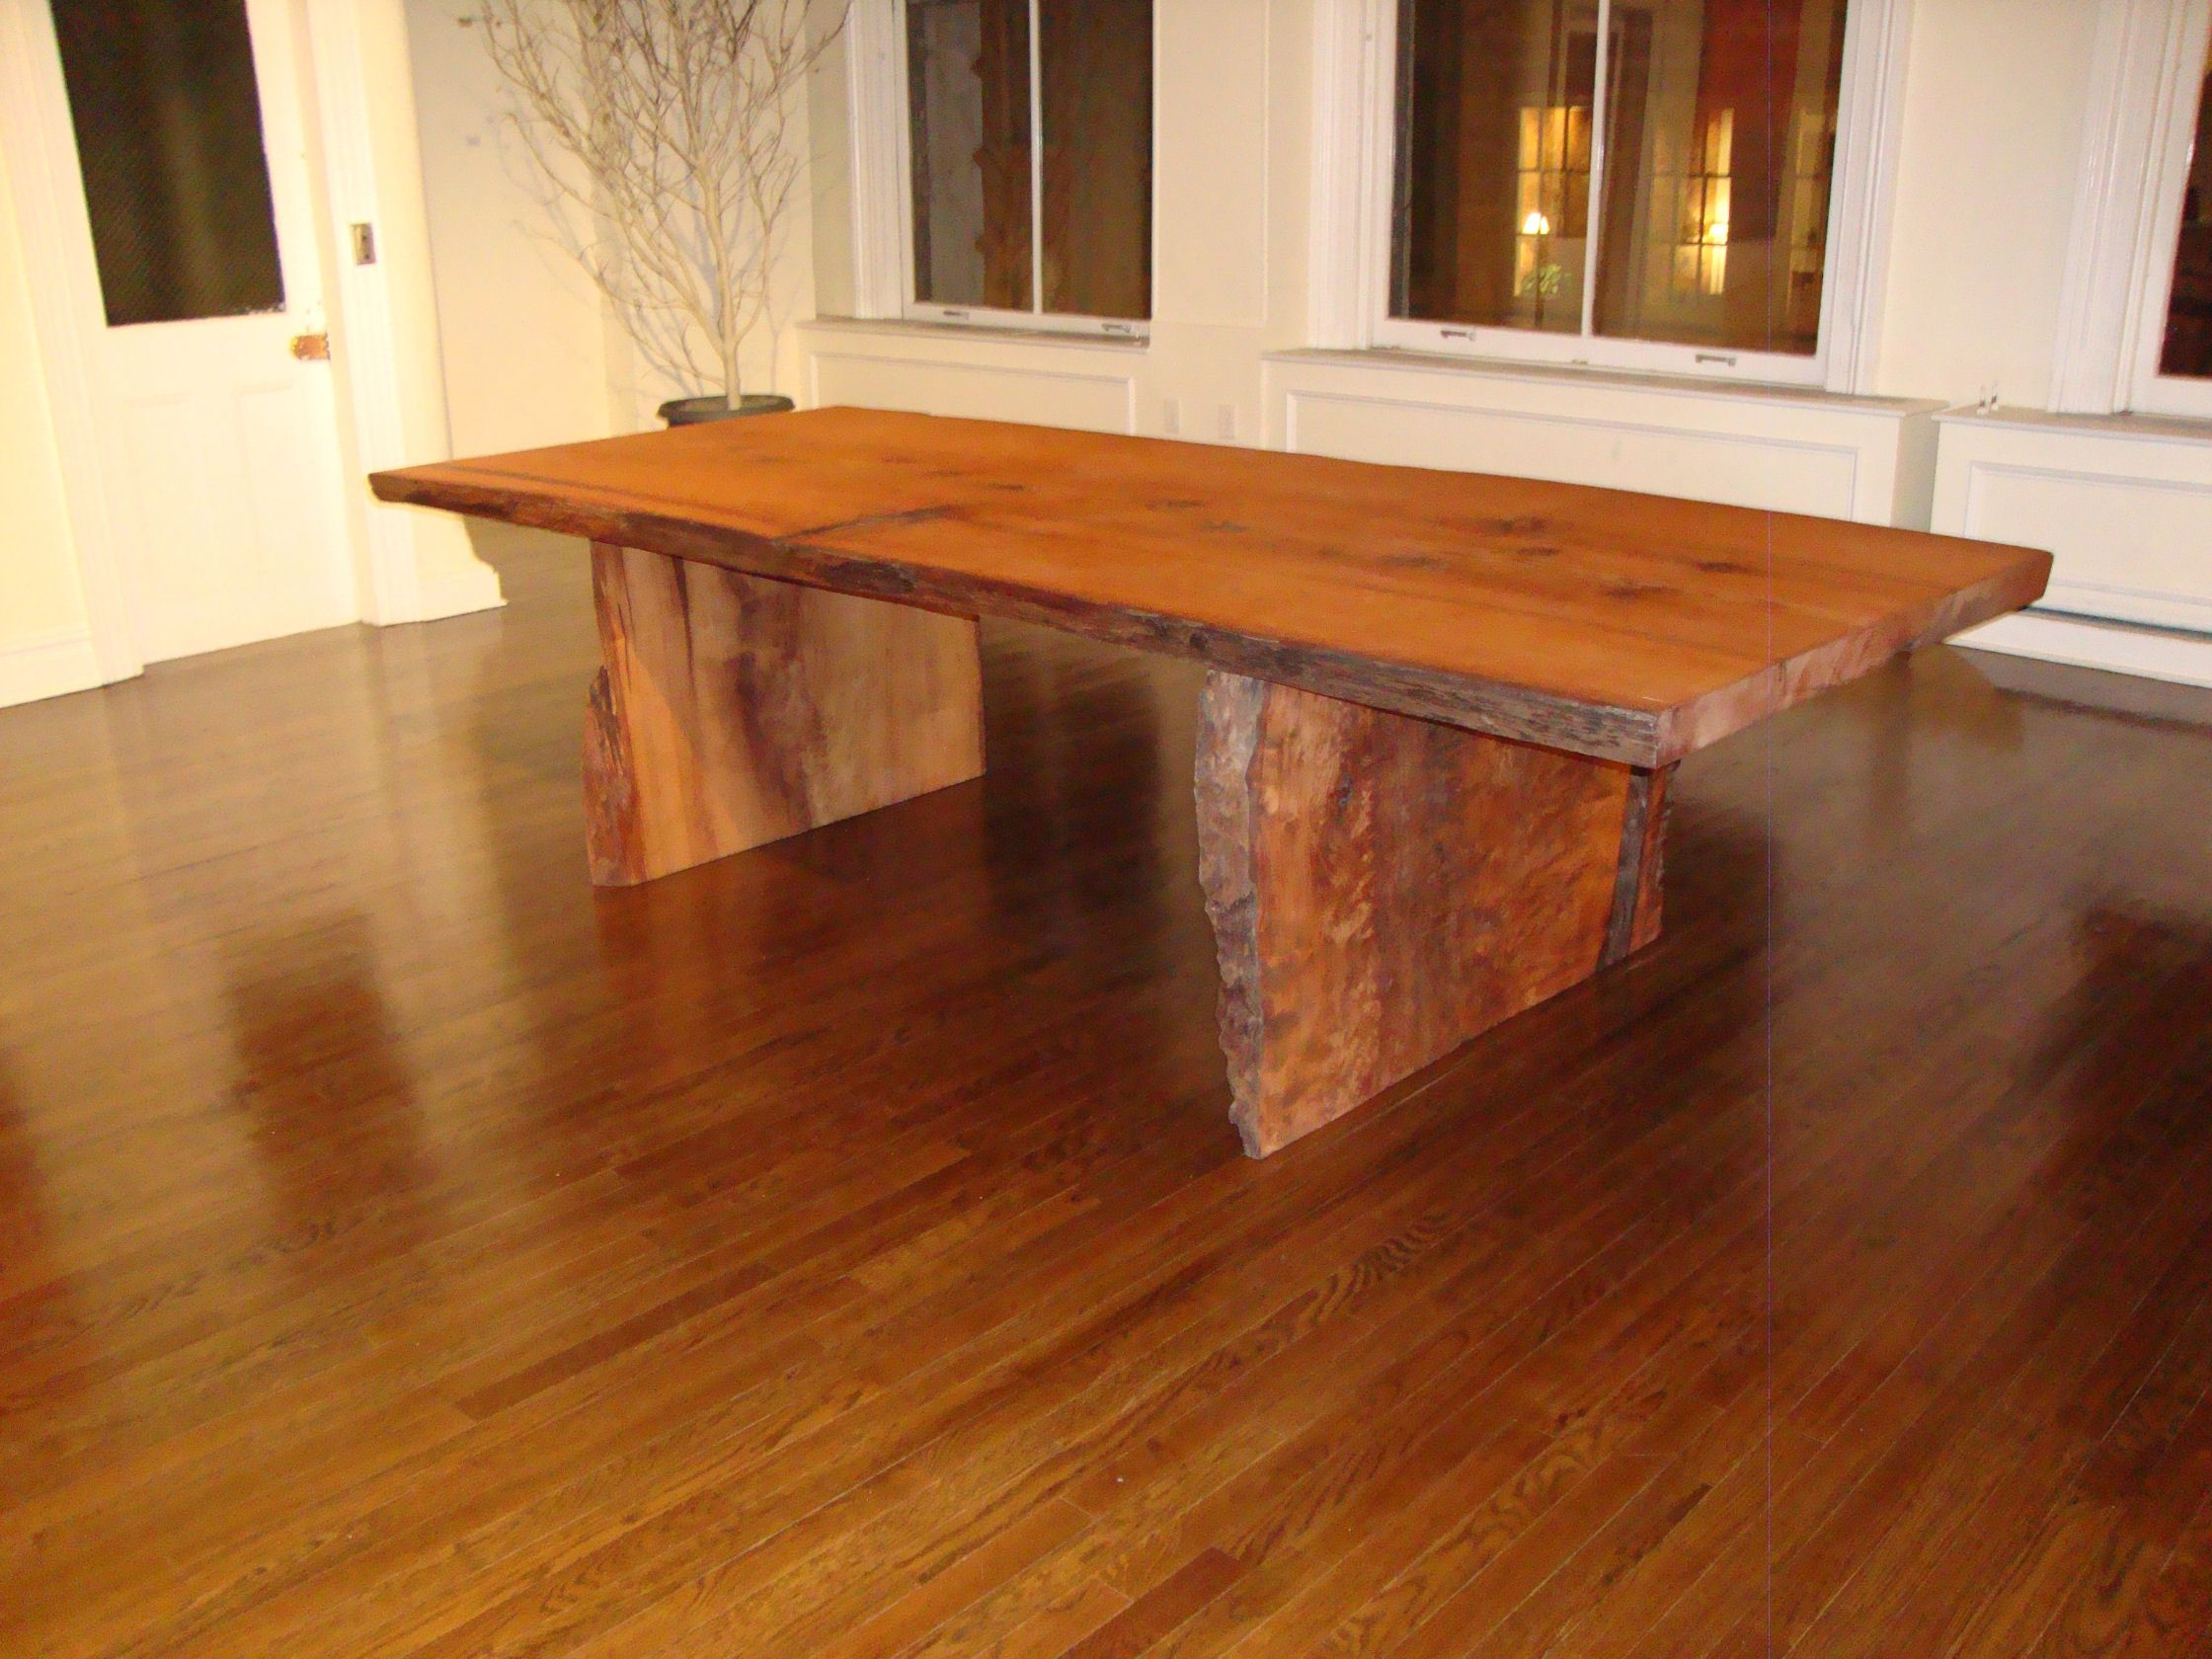 Table Solid Wood Reclaimed Wood Furniture Slab Table Natural Wood Furniture Rustic Table